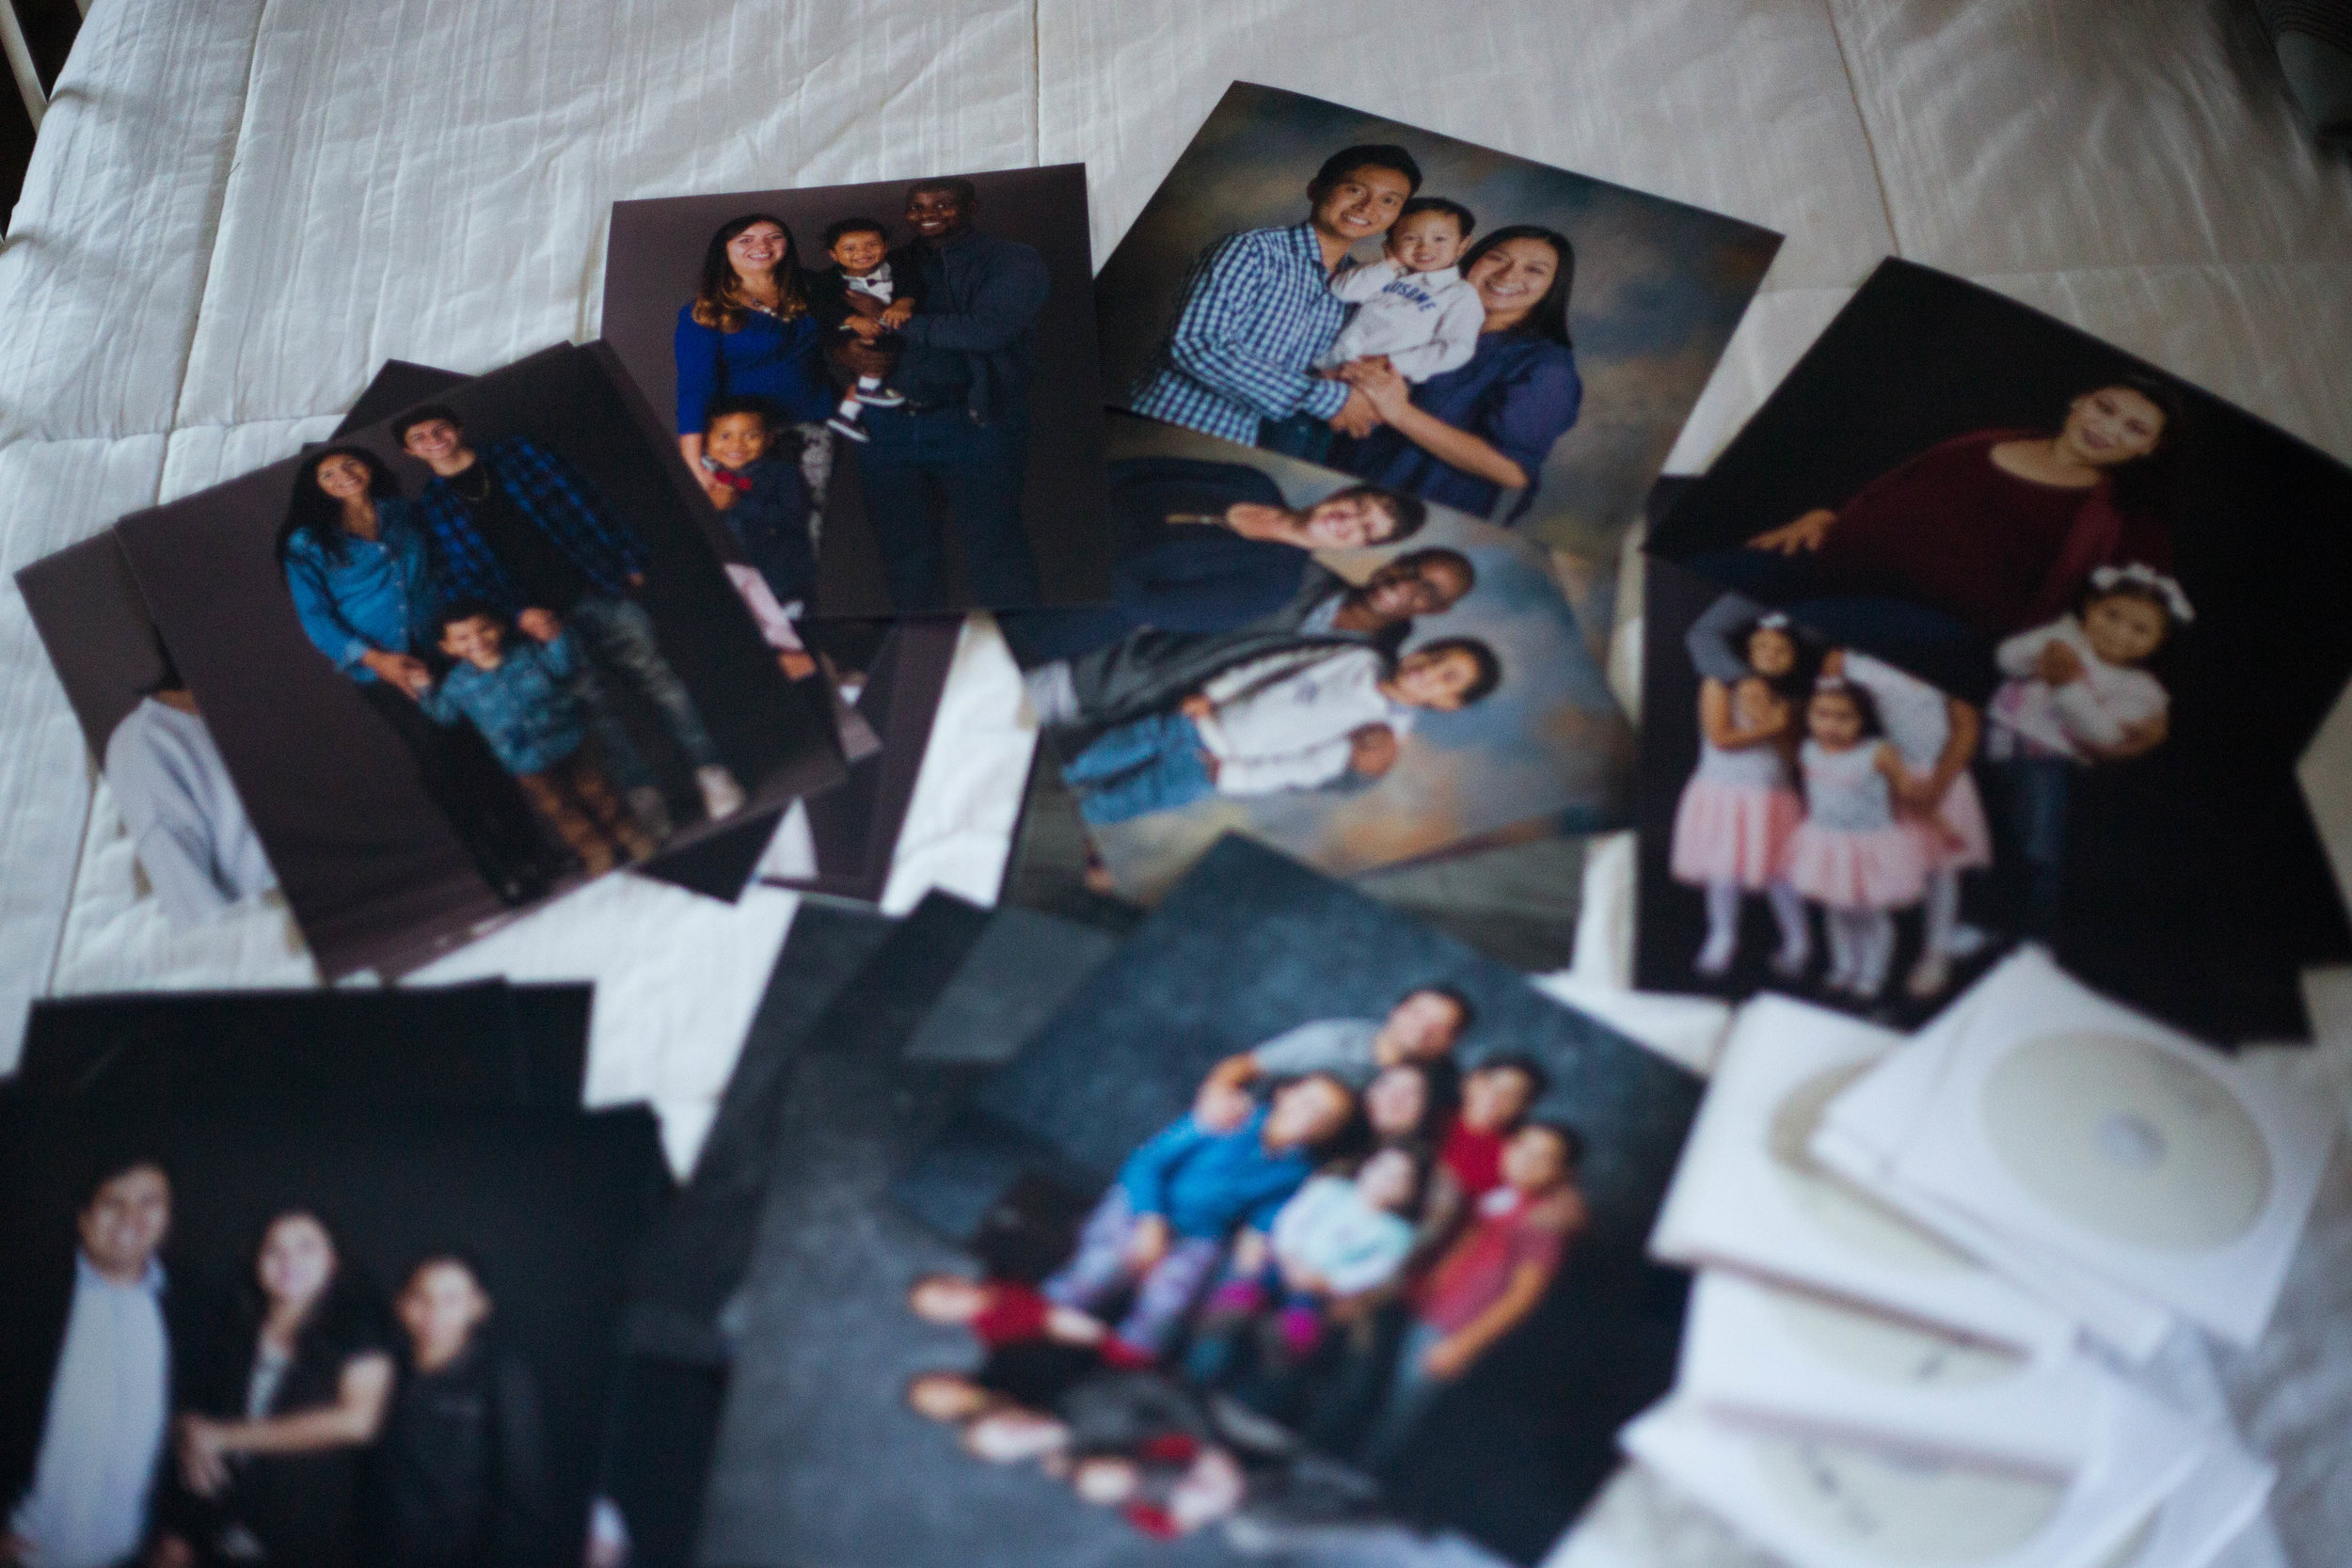 And as always, every family receives a free 8x10 and disc of all their images!